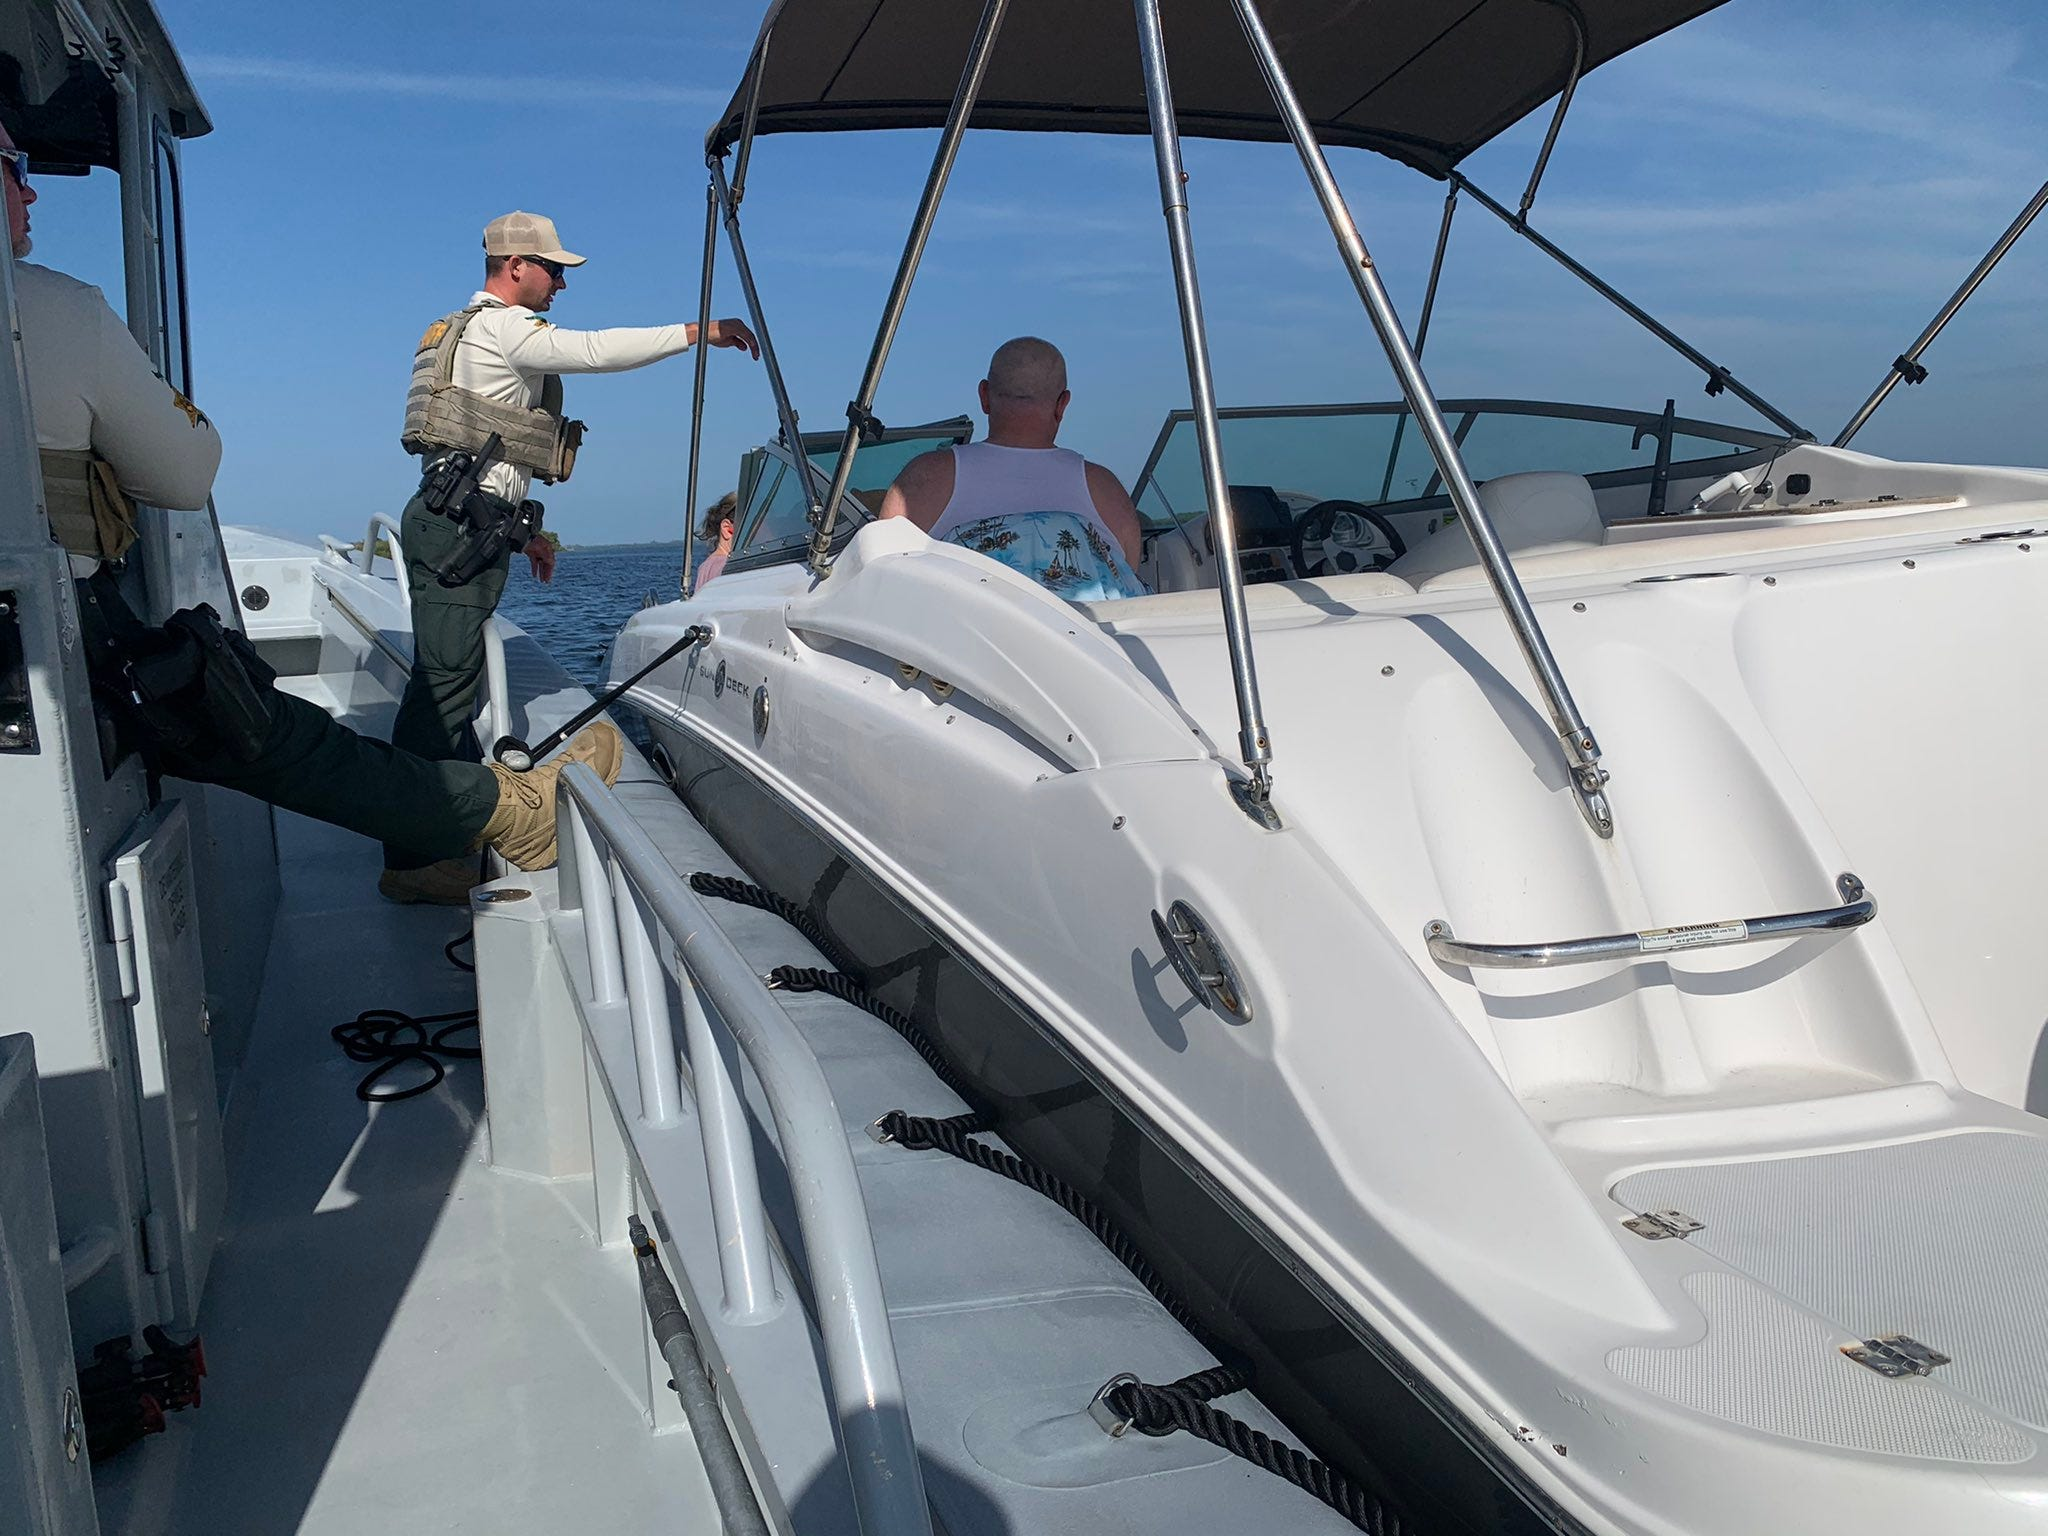 Expect record number of first-time boaters on the water Memorial Day weekend in Southwest Florida 4